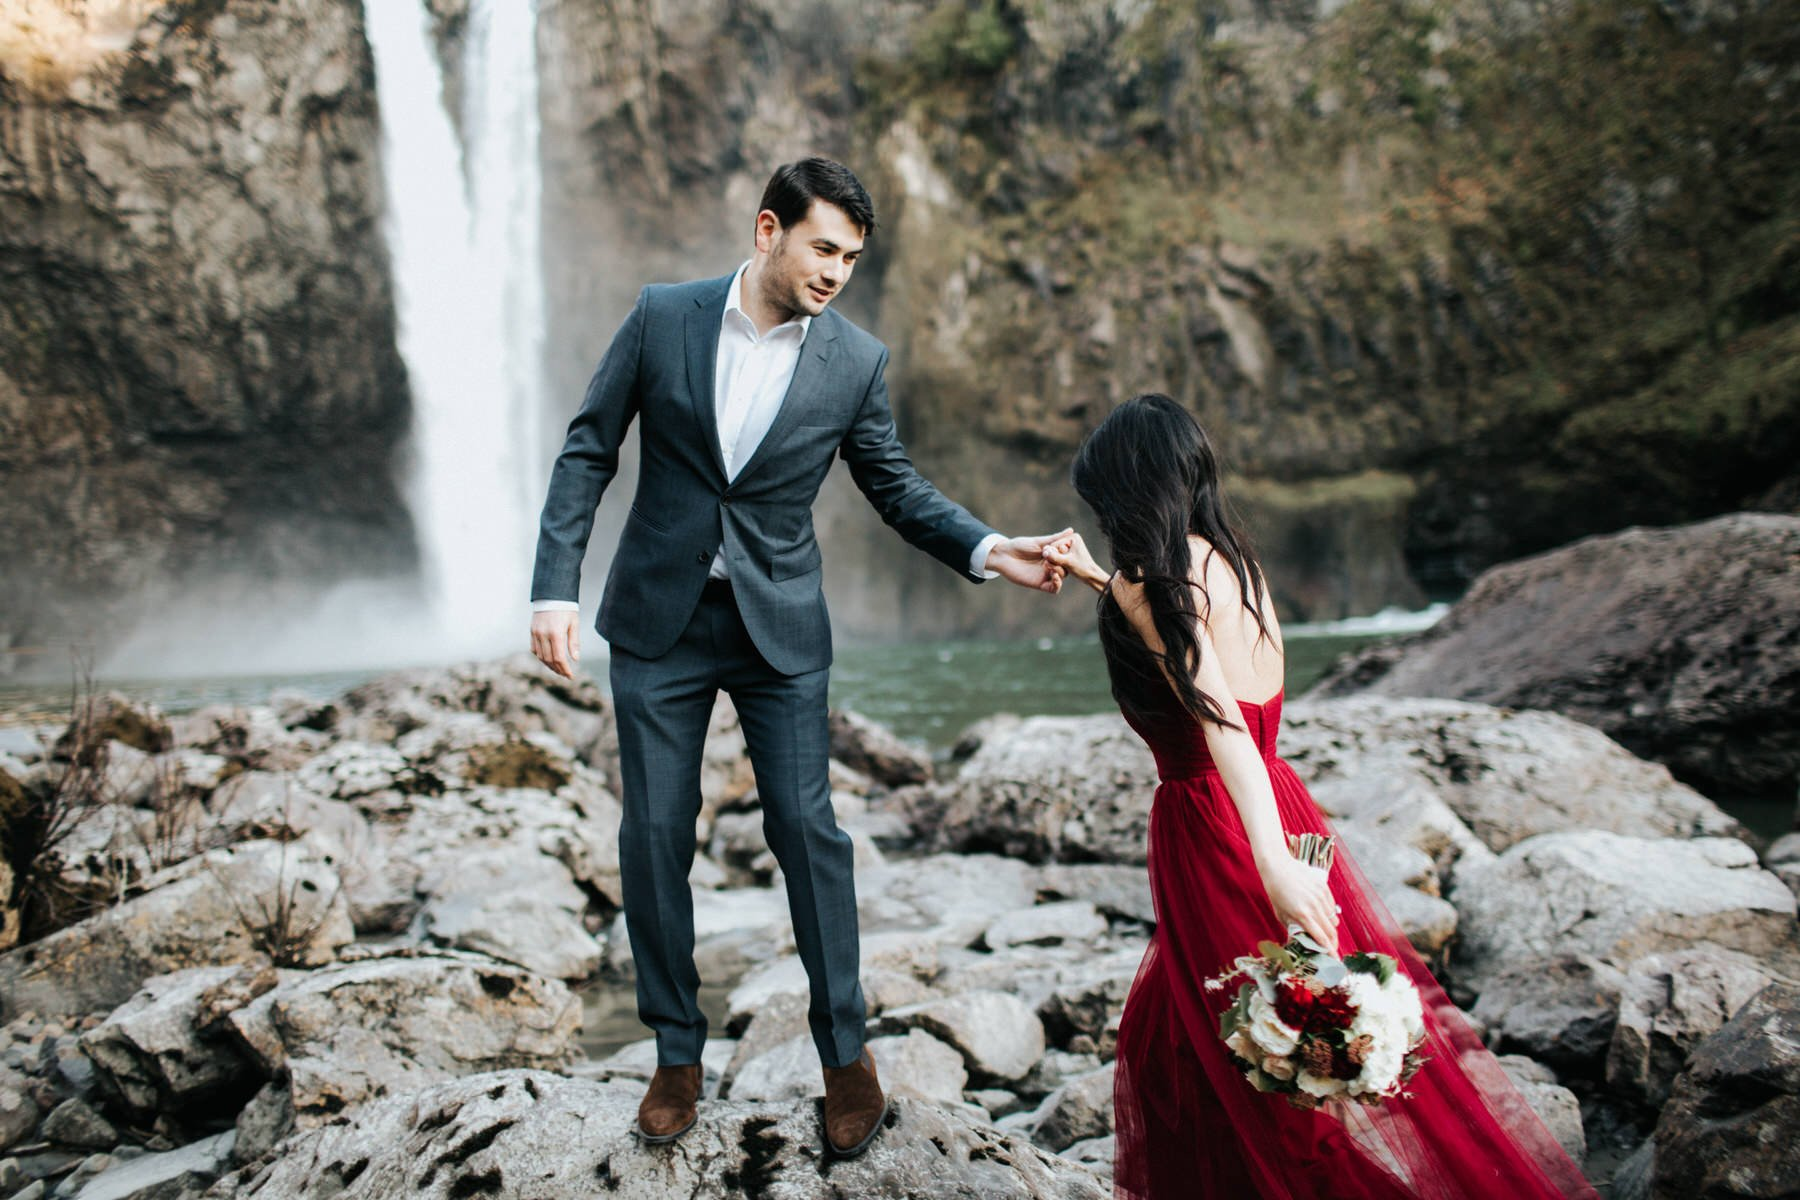 A groom helps his bride at snoqualmie falls